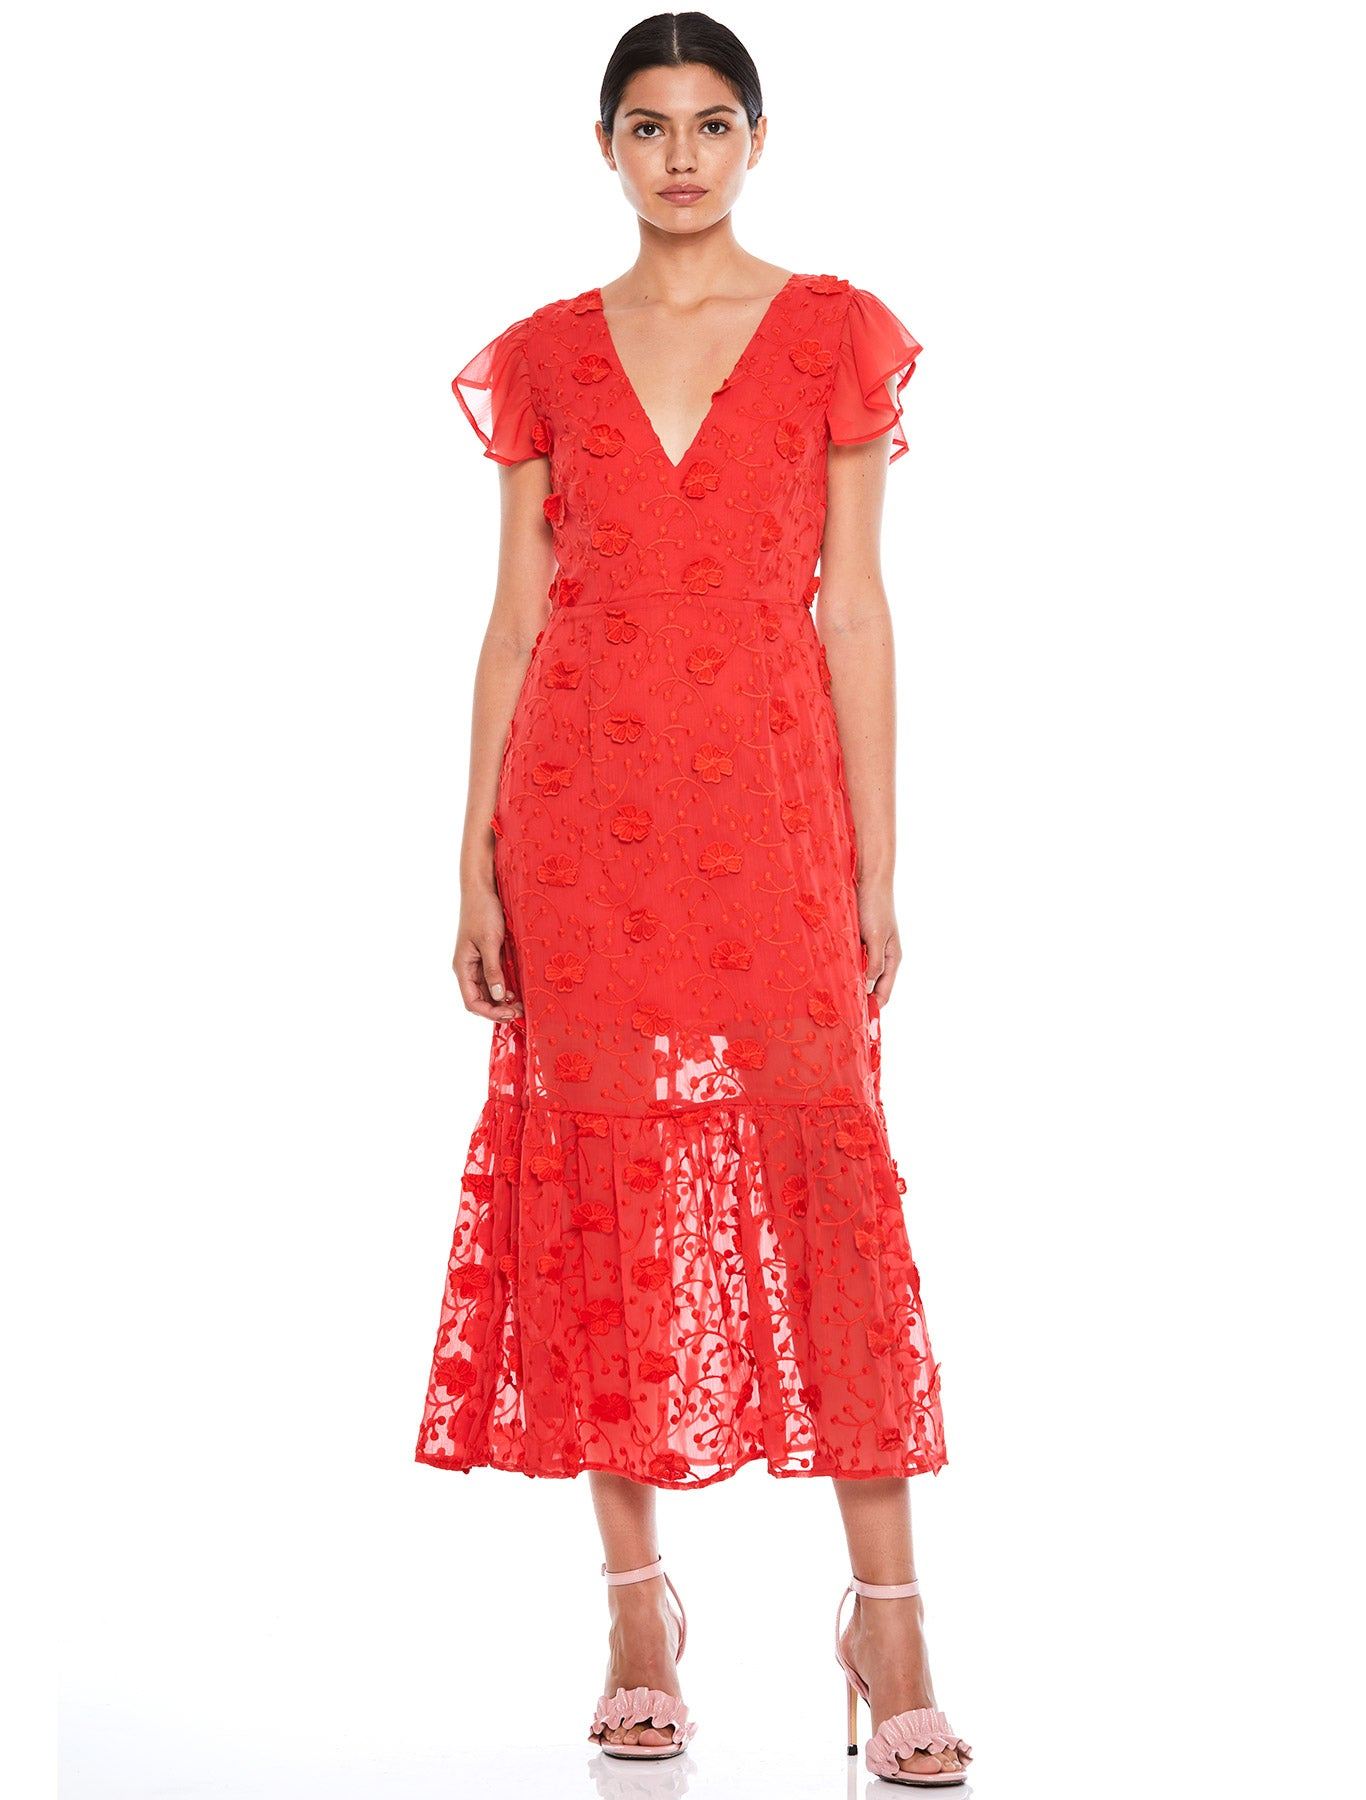 SCARLETT RUFFLE MIDI DRESS